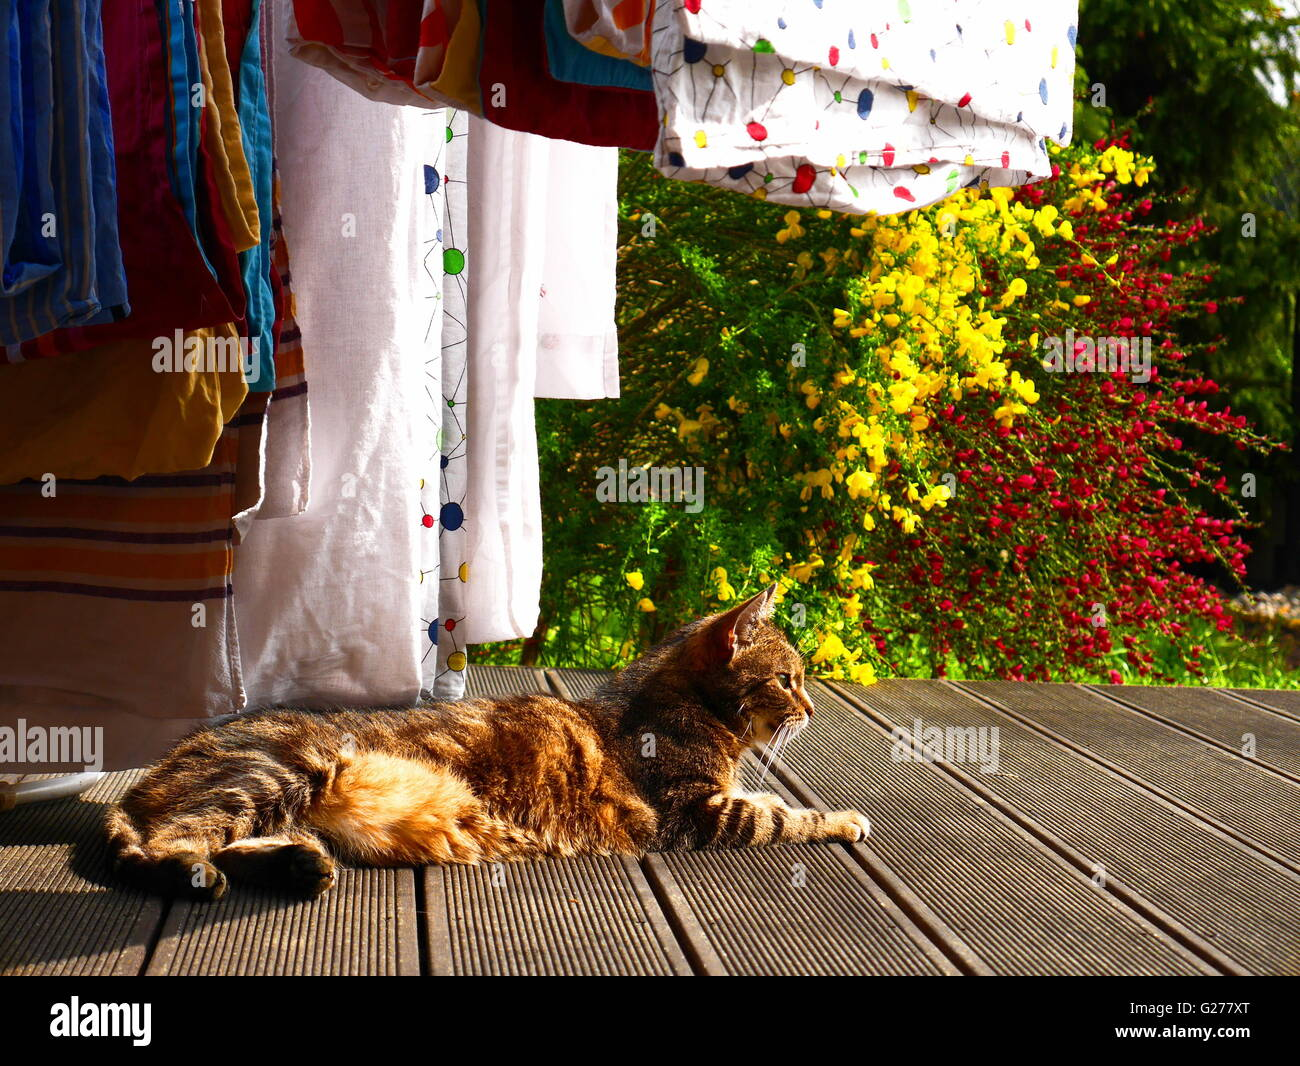 Resting cat - Stock Image